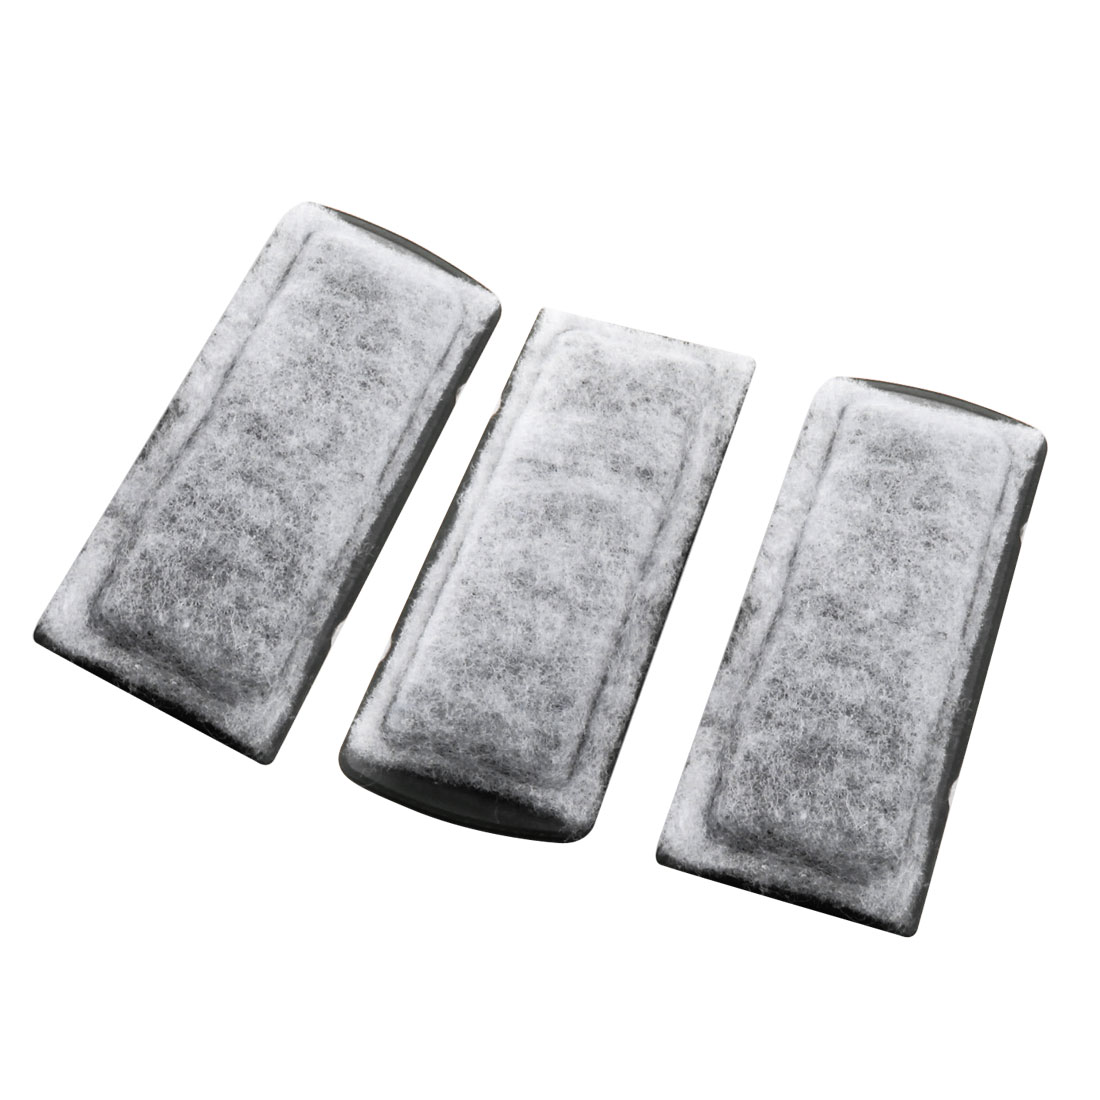 3 Pcs 13.5cm x 5cm x 1.3cm Rectangular Filter Sponge Pad Mat White for Fish Tank